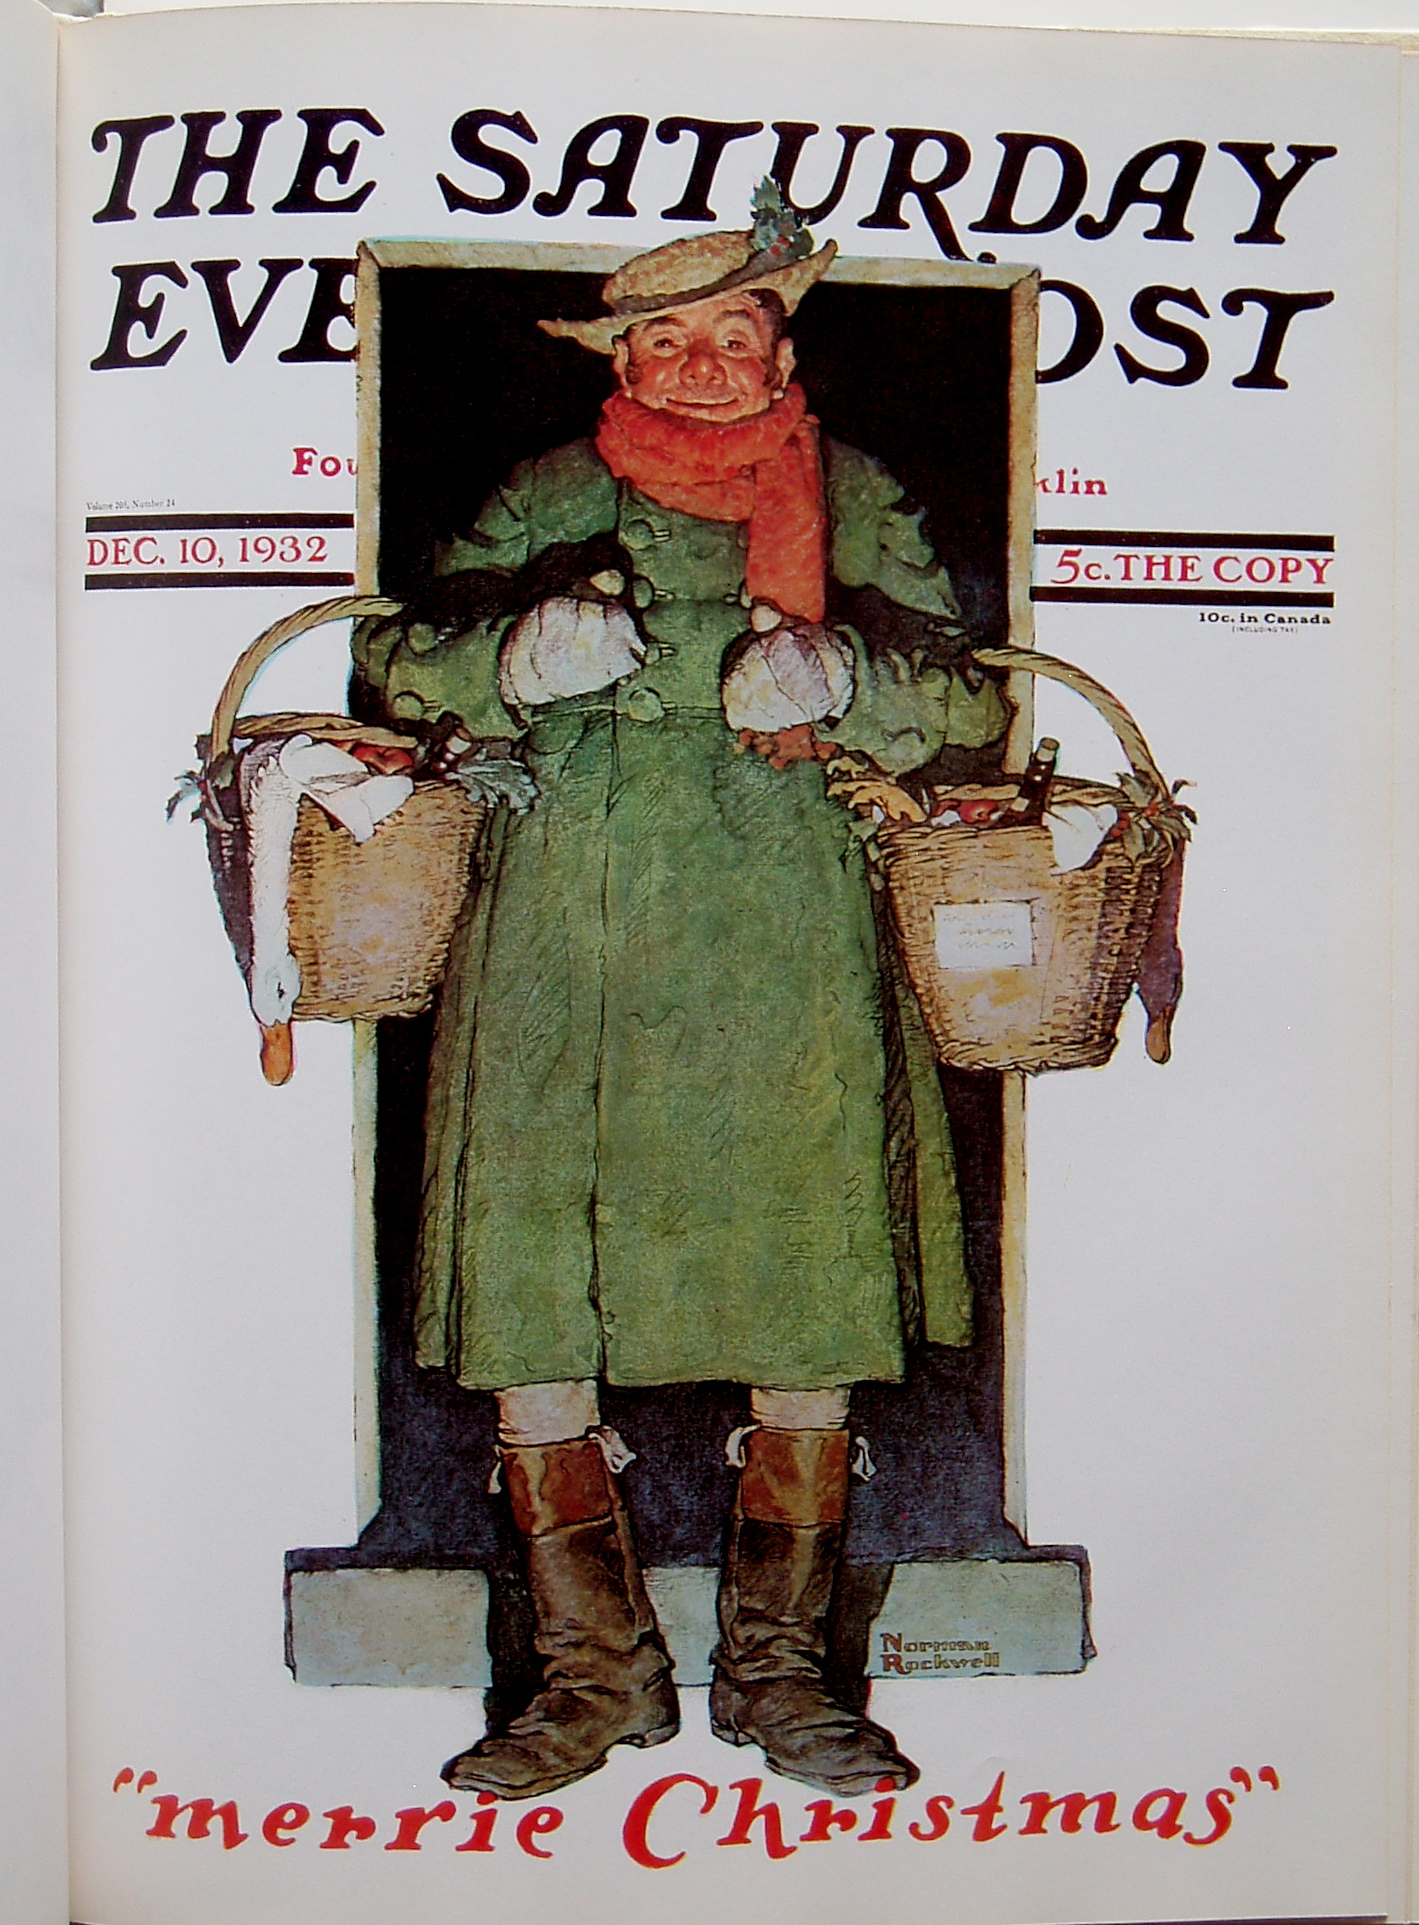 All Norman Rockwell S Saturday Evening Post Covers Omero